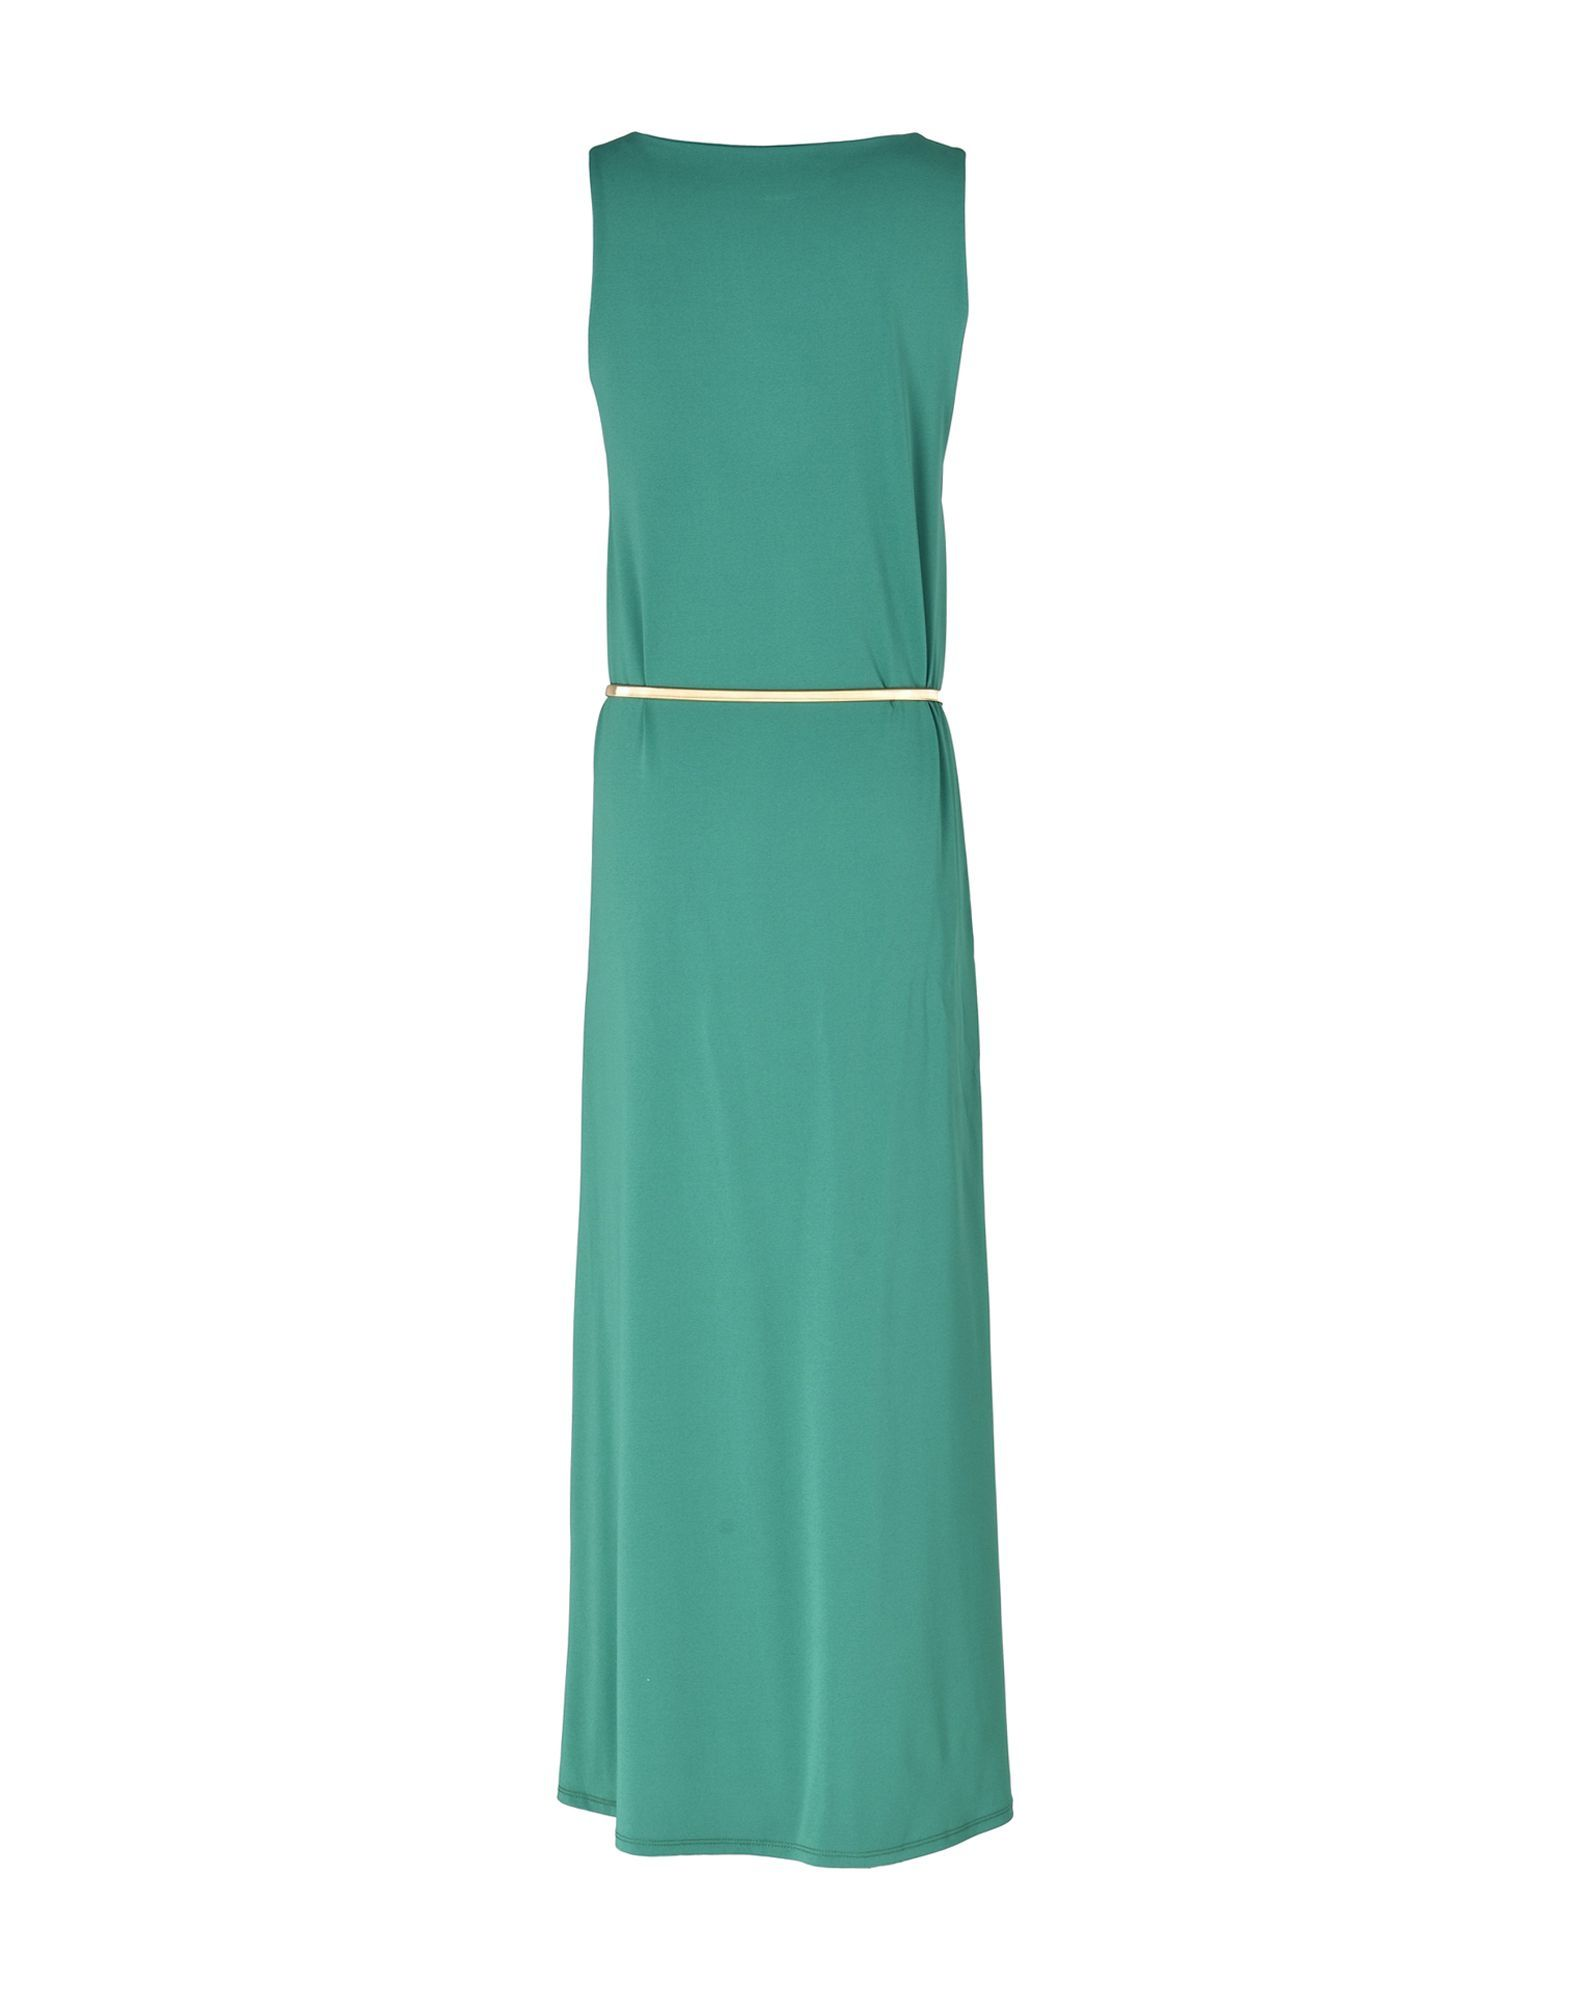 Kaos Green Full Length Belted Dress